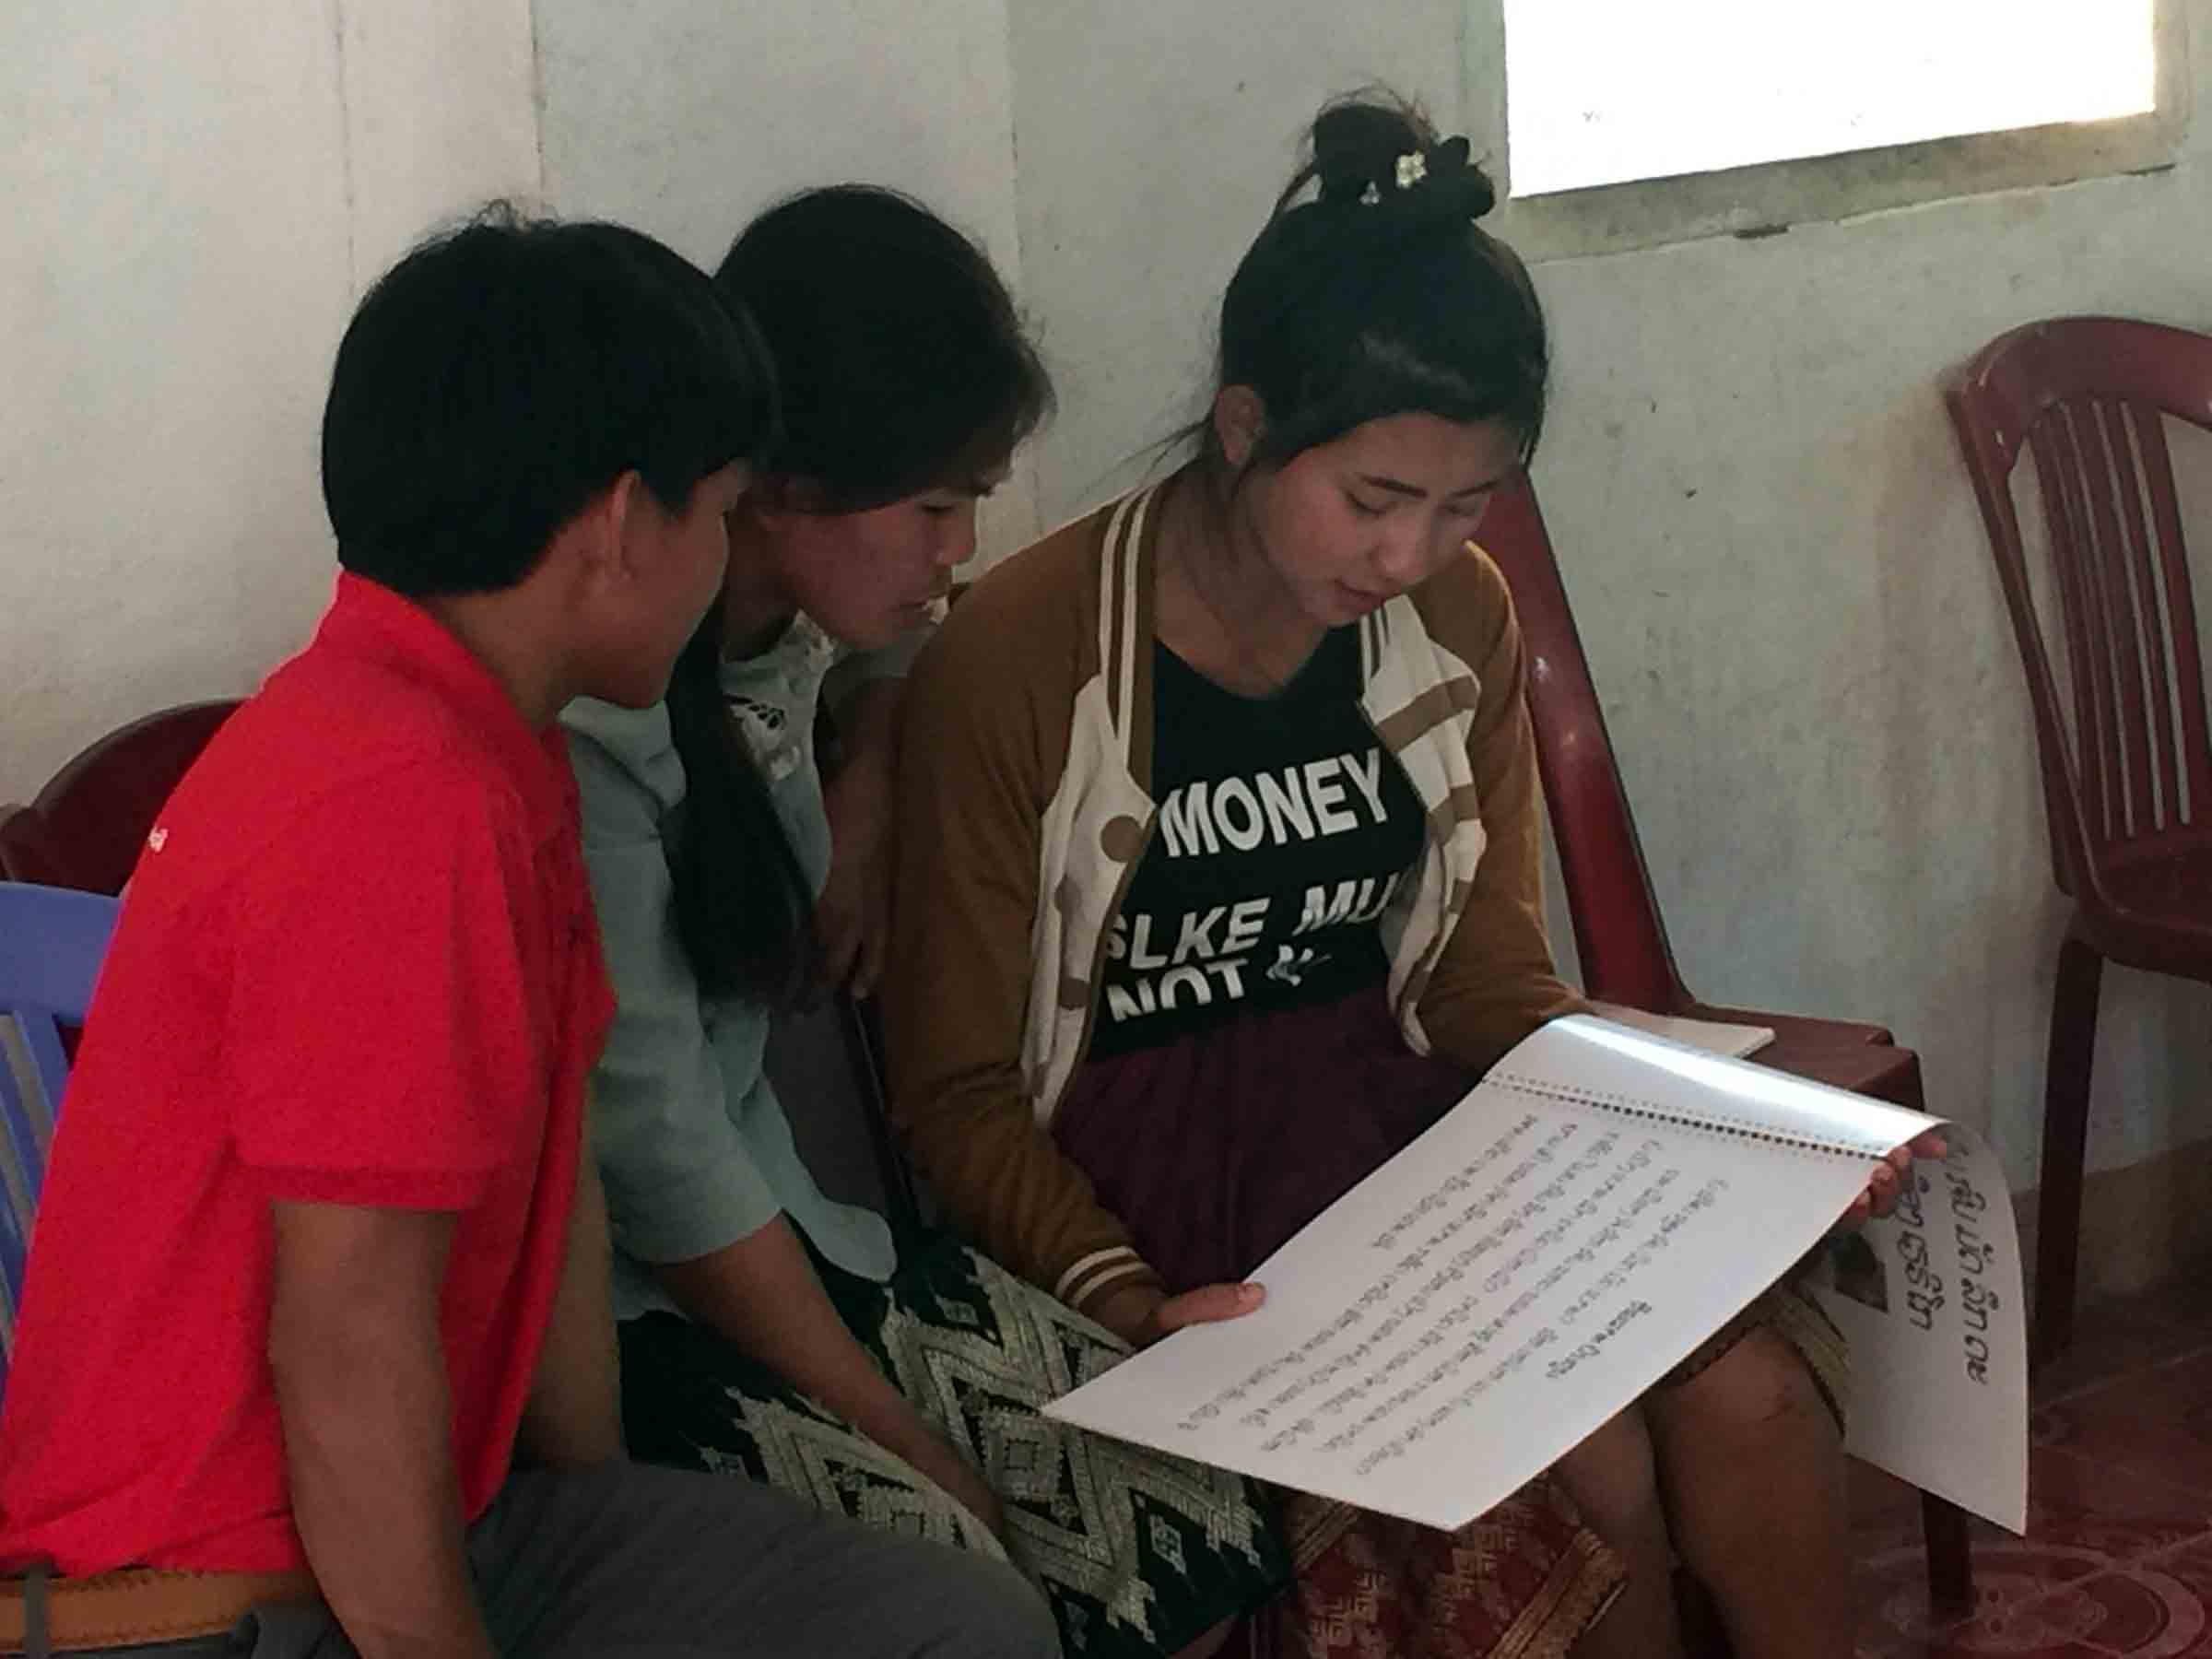 A young Sunday school teacher cannot attend college now because she chose to teach children about Jesus.